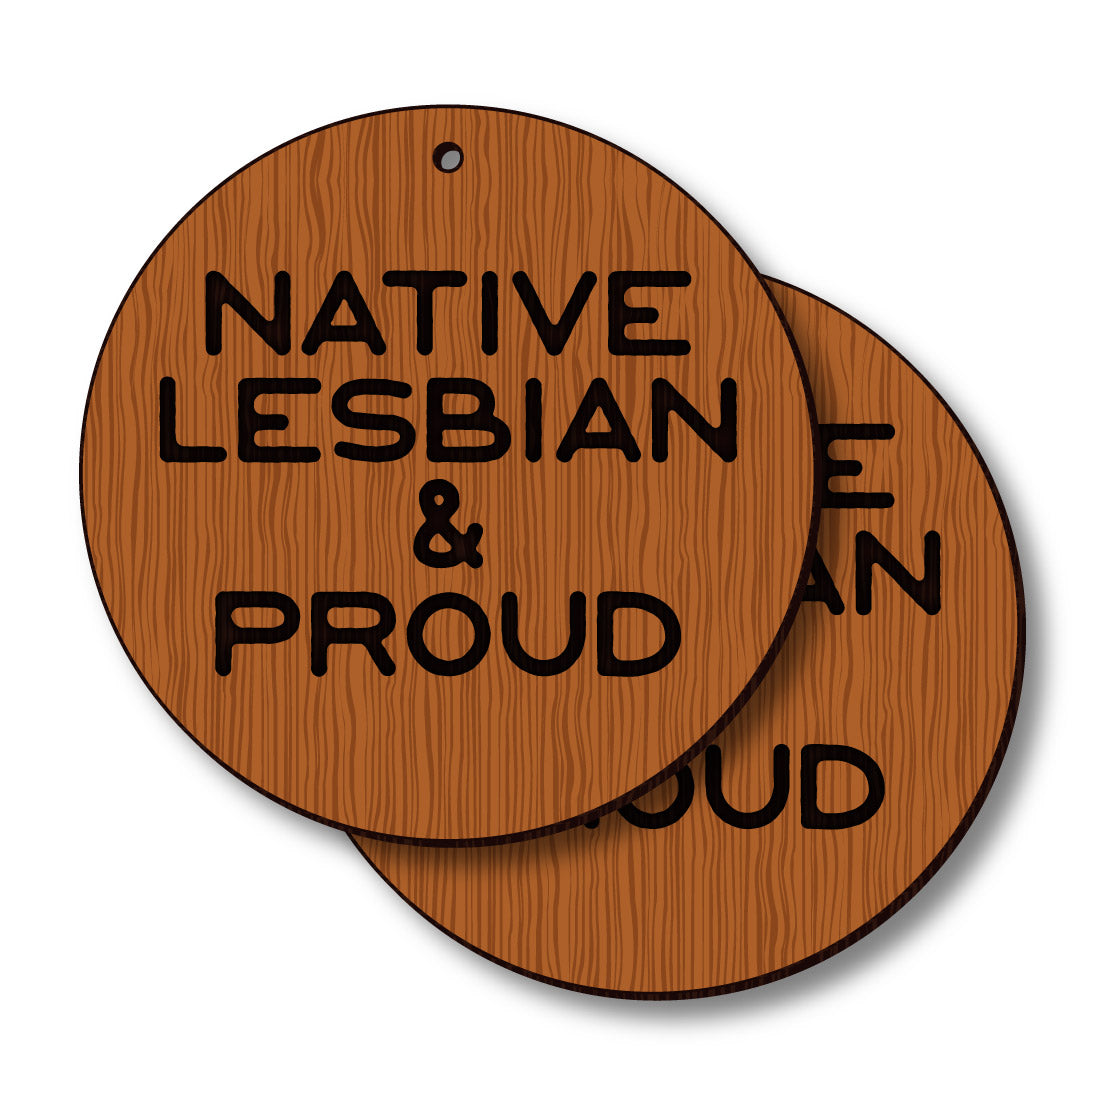 David Bernie Shop Laser Cut Cherry Wood Earrings Native Lesbian Proud